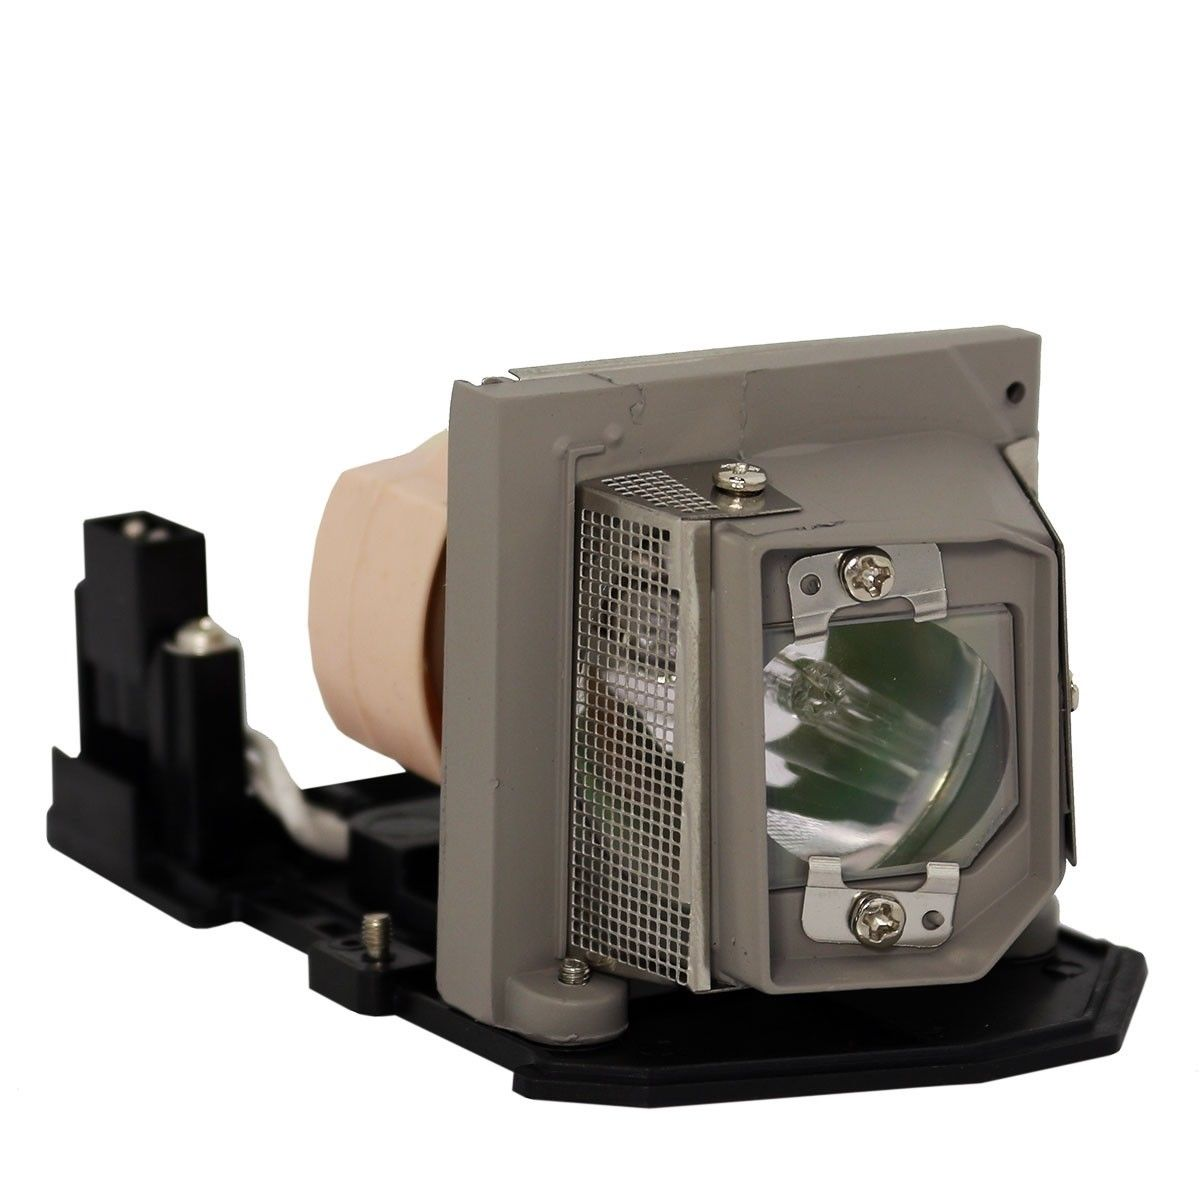 Projector Lamp Bulb BL-FP190A BLFP190A SP.8TK01GC01 for OPTOMA S300 S300+ X300 DS325 DX325 With HousingProjector Lamp Bulb BL-FP190A BLFP190A SP.8TK01GC01 for OPTOMA S300 S300+ X300 DS325 DX325 With Housing